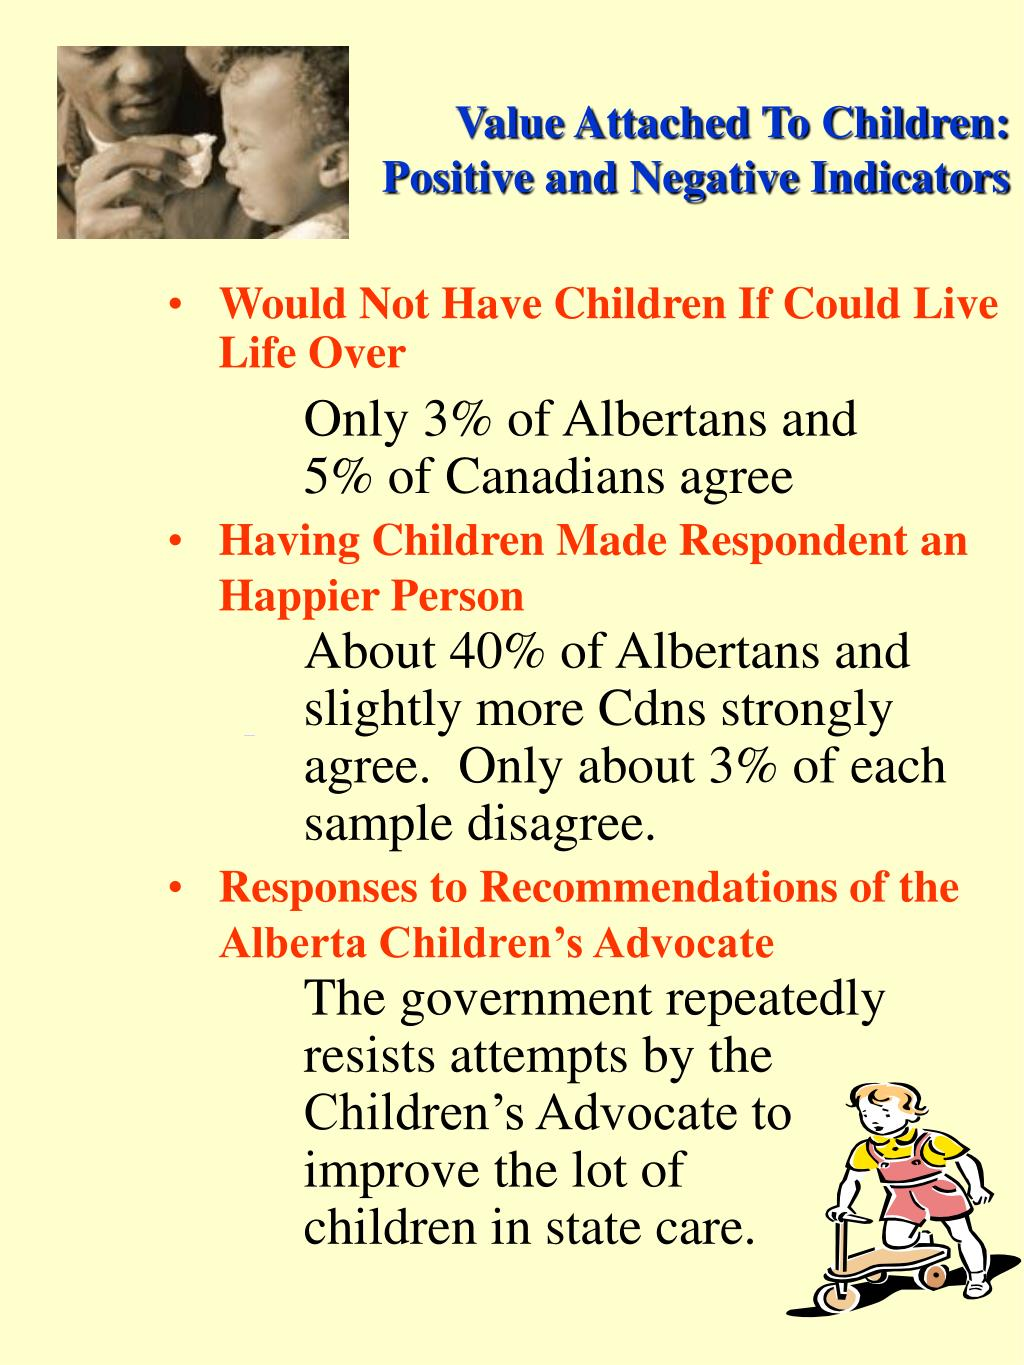 Value Attached To Children: